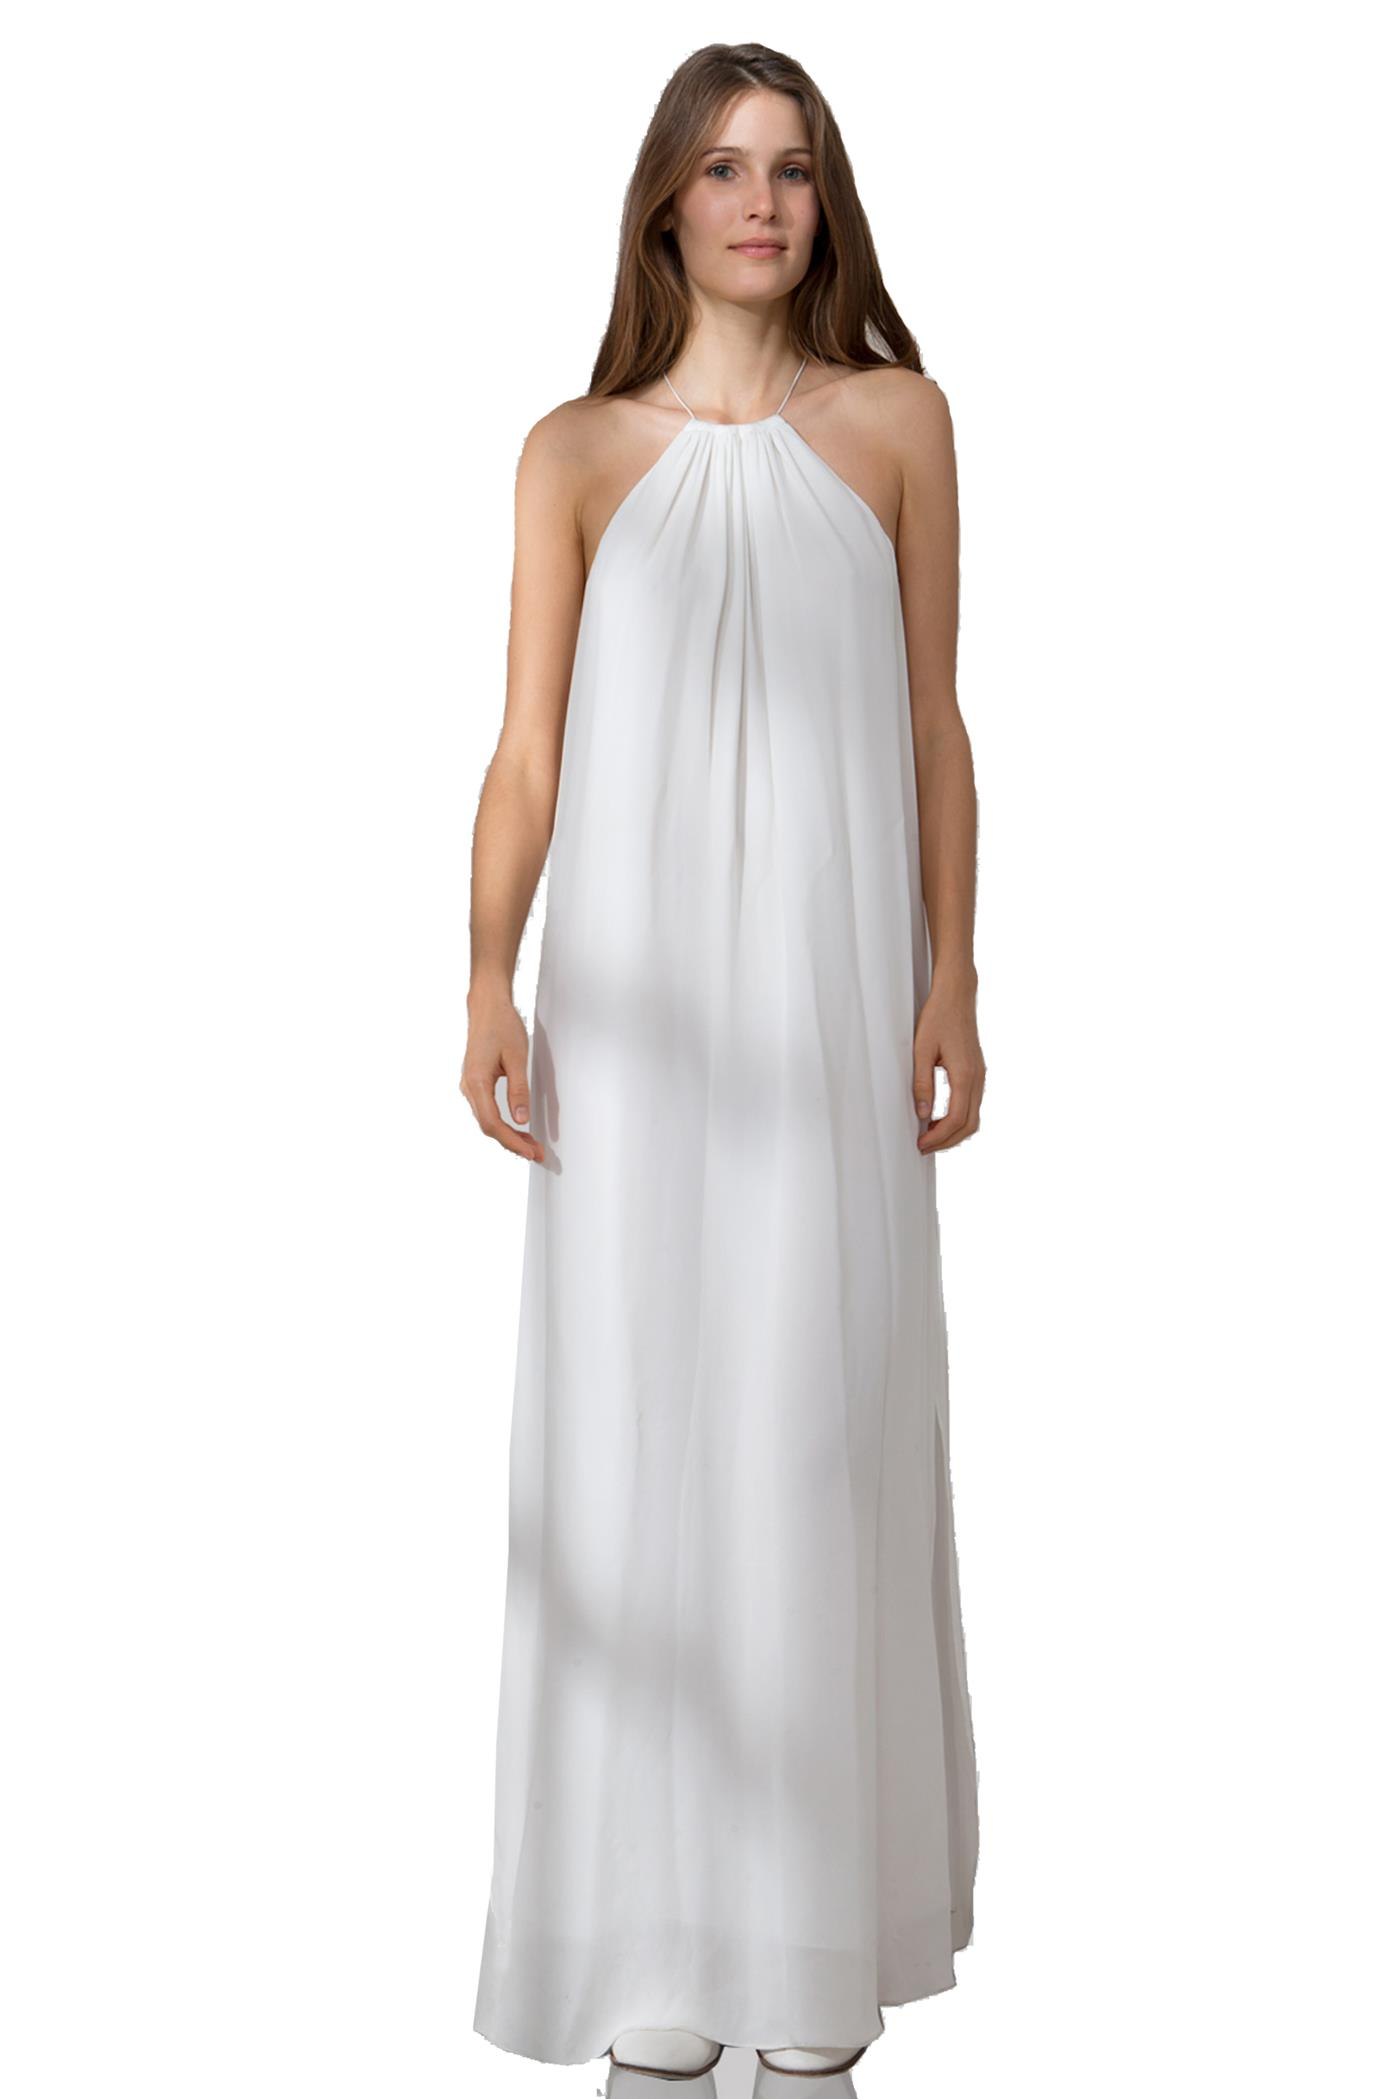 Solid dbl ggt maxi dress at tangerine nyc in ivory, marble paint print, bright geometric